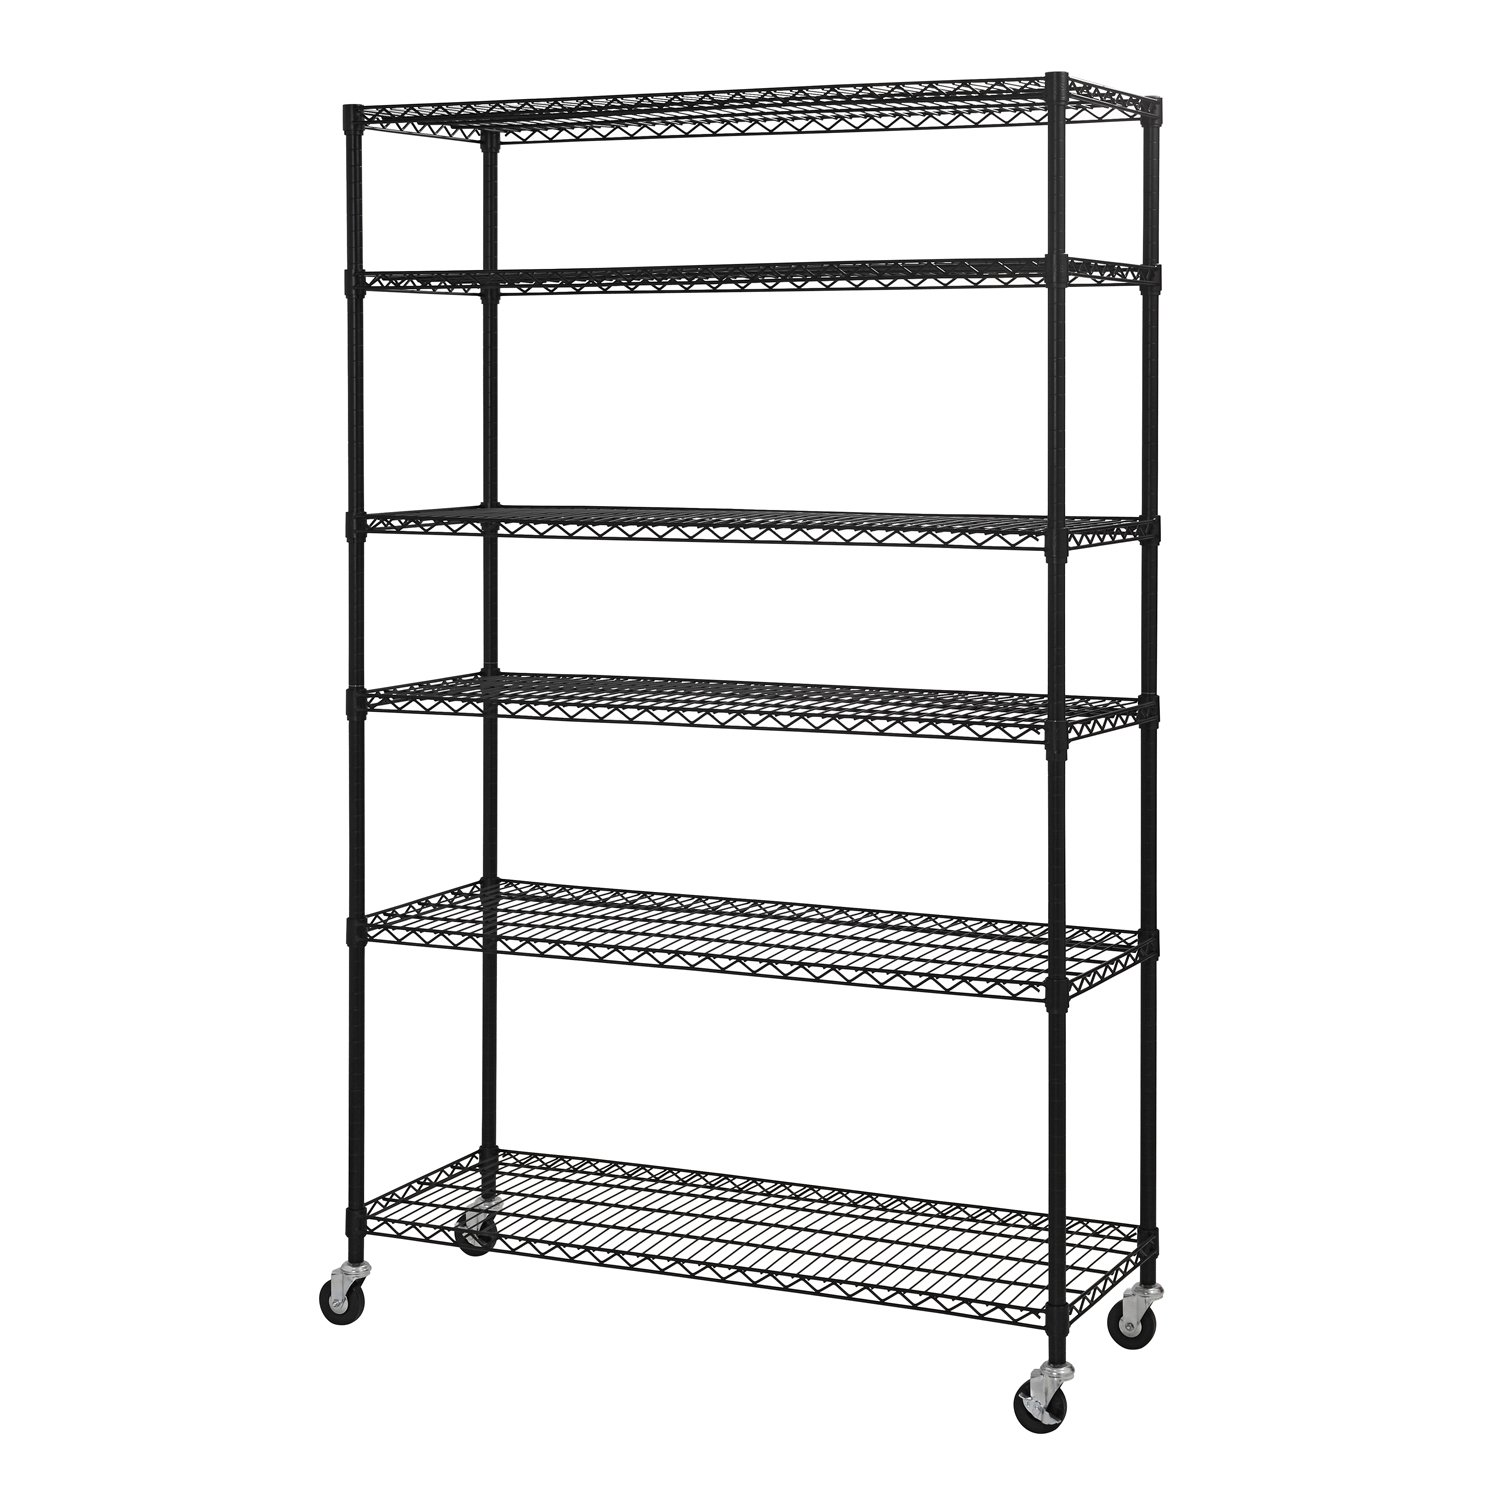 Amazon.com: Sandusky Lee MWS481874-B 6-Tier Wire Shelving Unit with ...